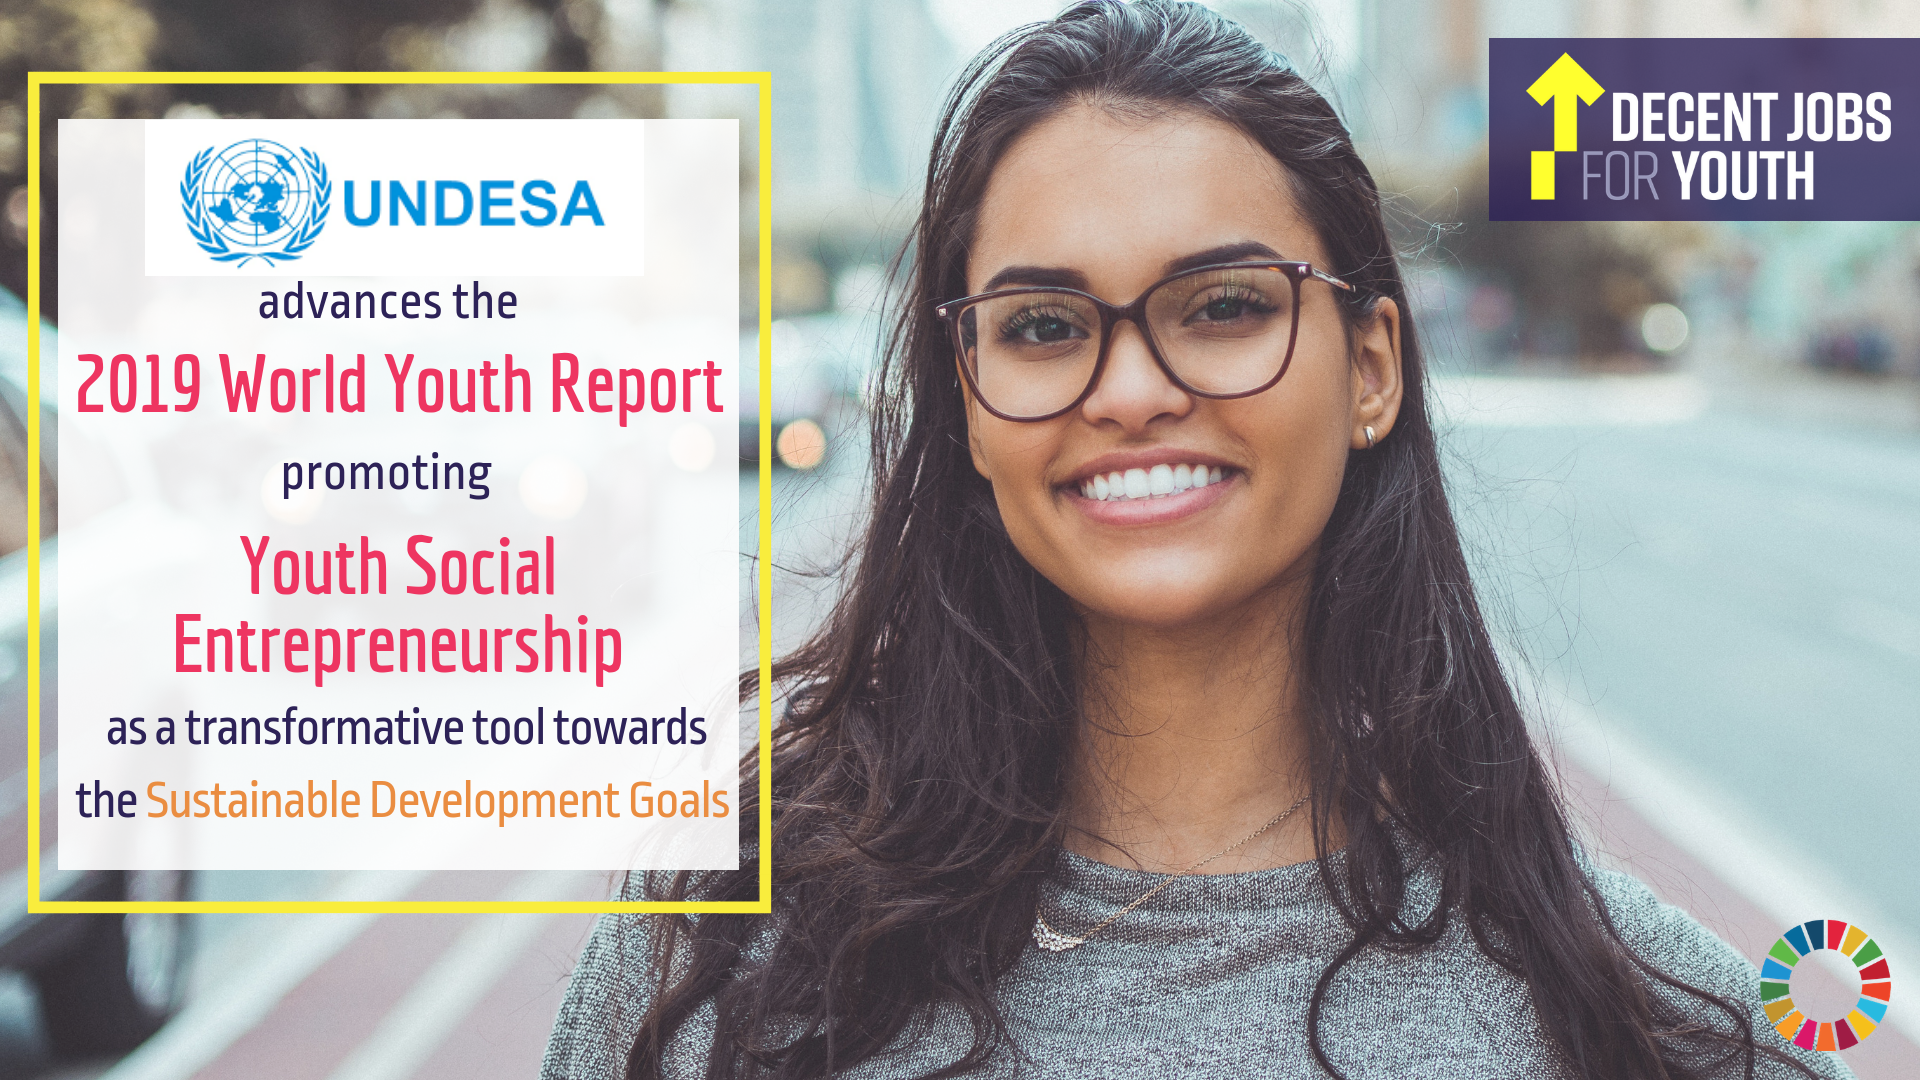 UN DESA commits to Decent Jobs for Youth to advance social entrepreneurship toward the SDGs